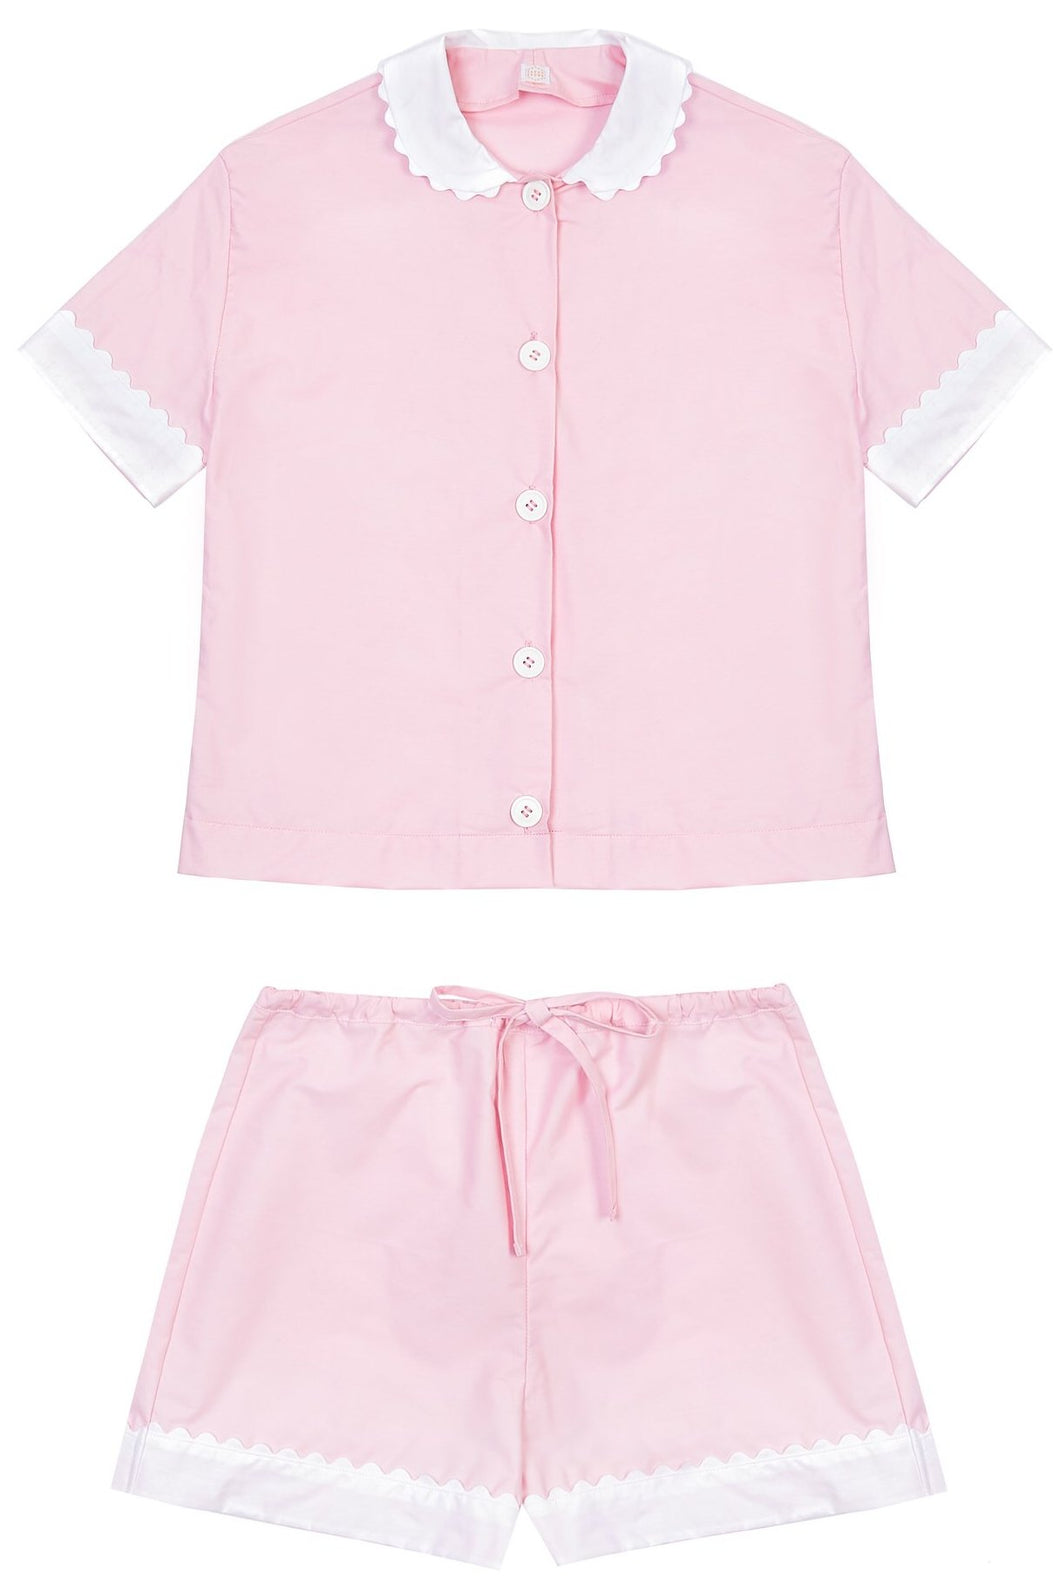 100% Cotton Poplin Pyjamas in Pink with White Contrasting Collar and Cuffs with Ric Rac Trim